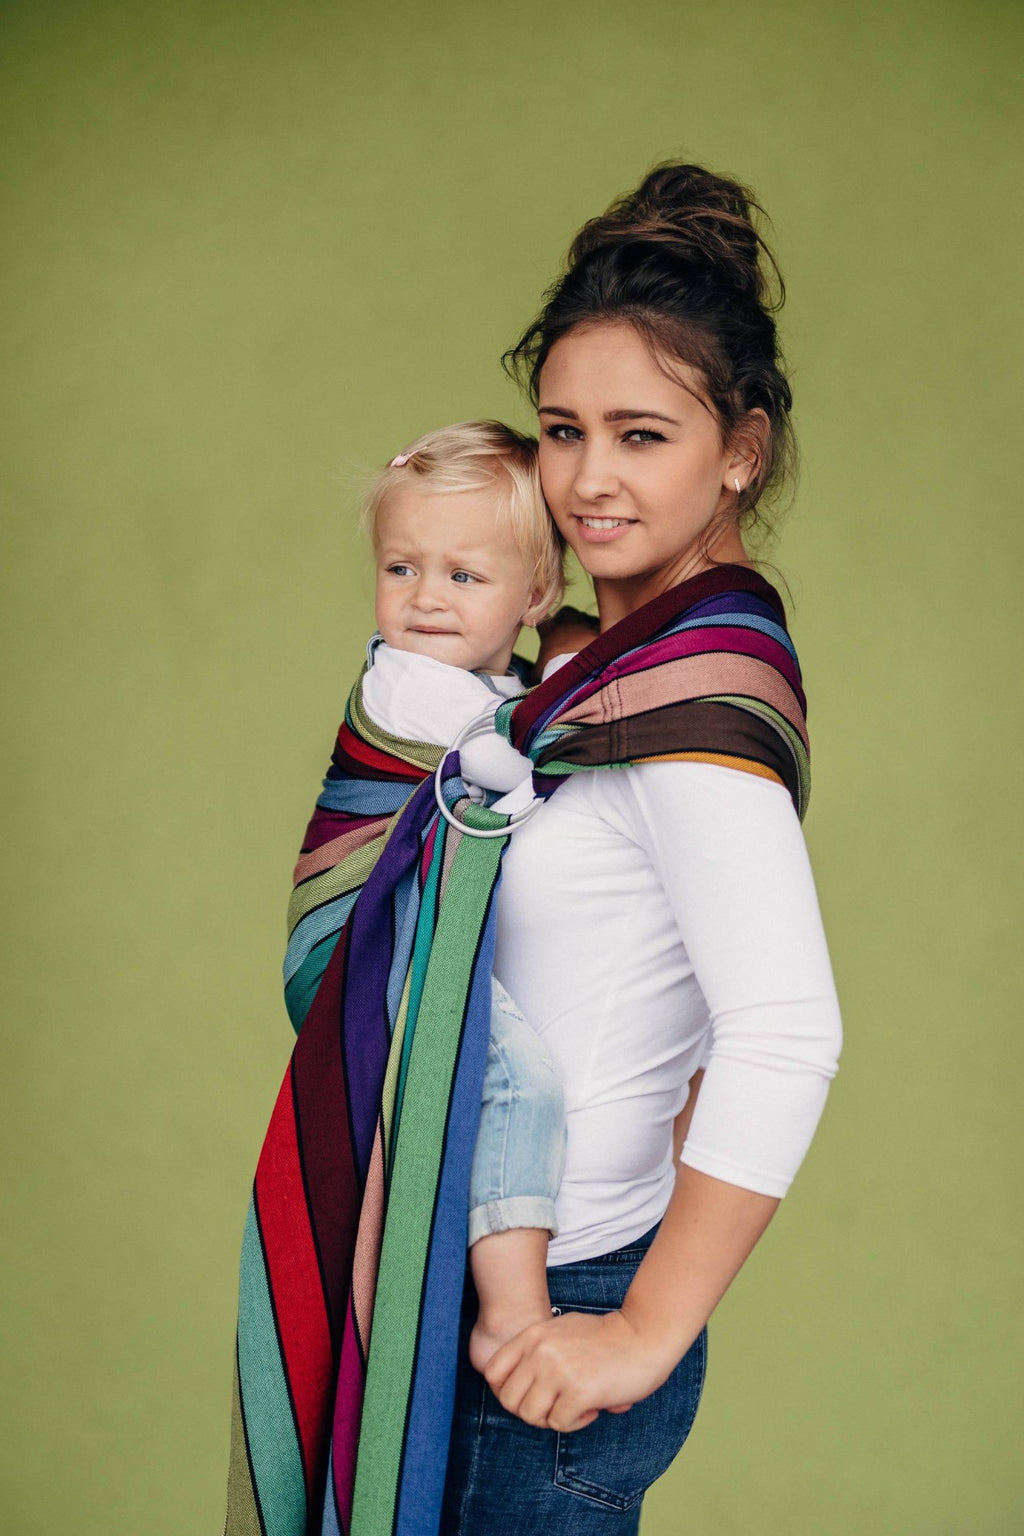 lenny lamb carousel of colors ring sling